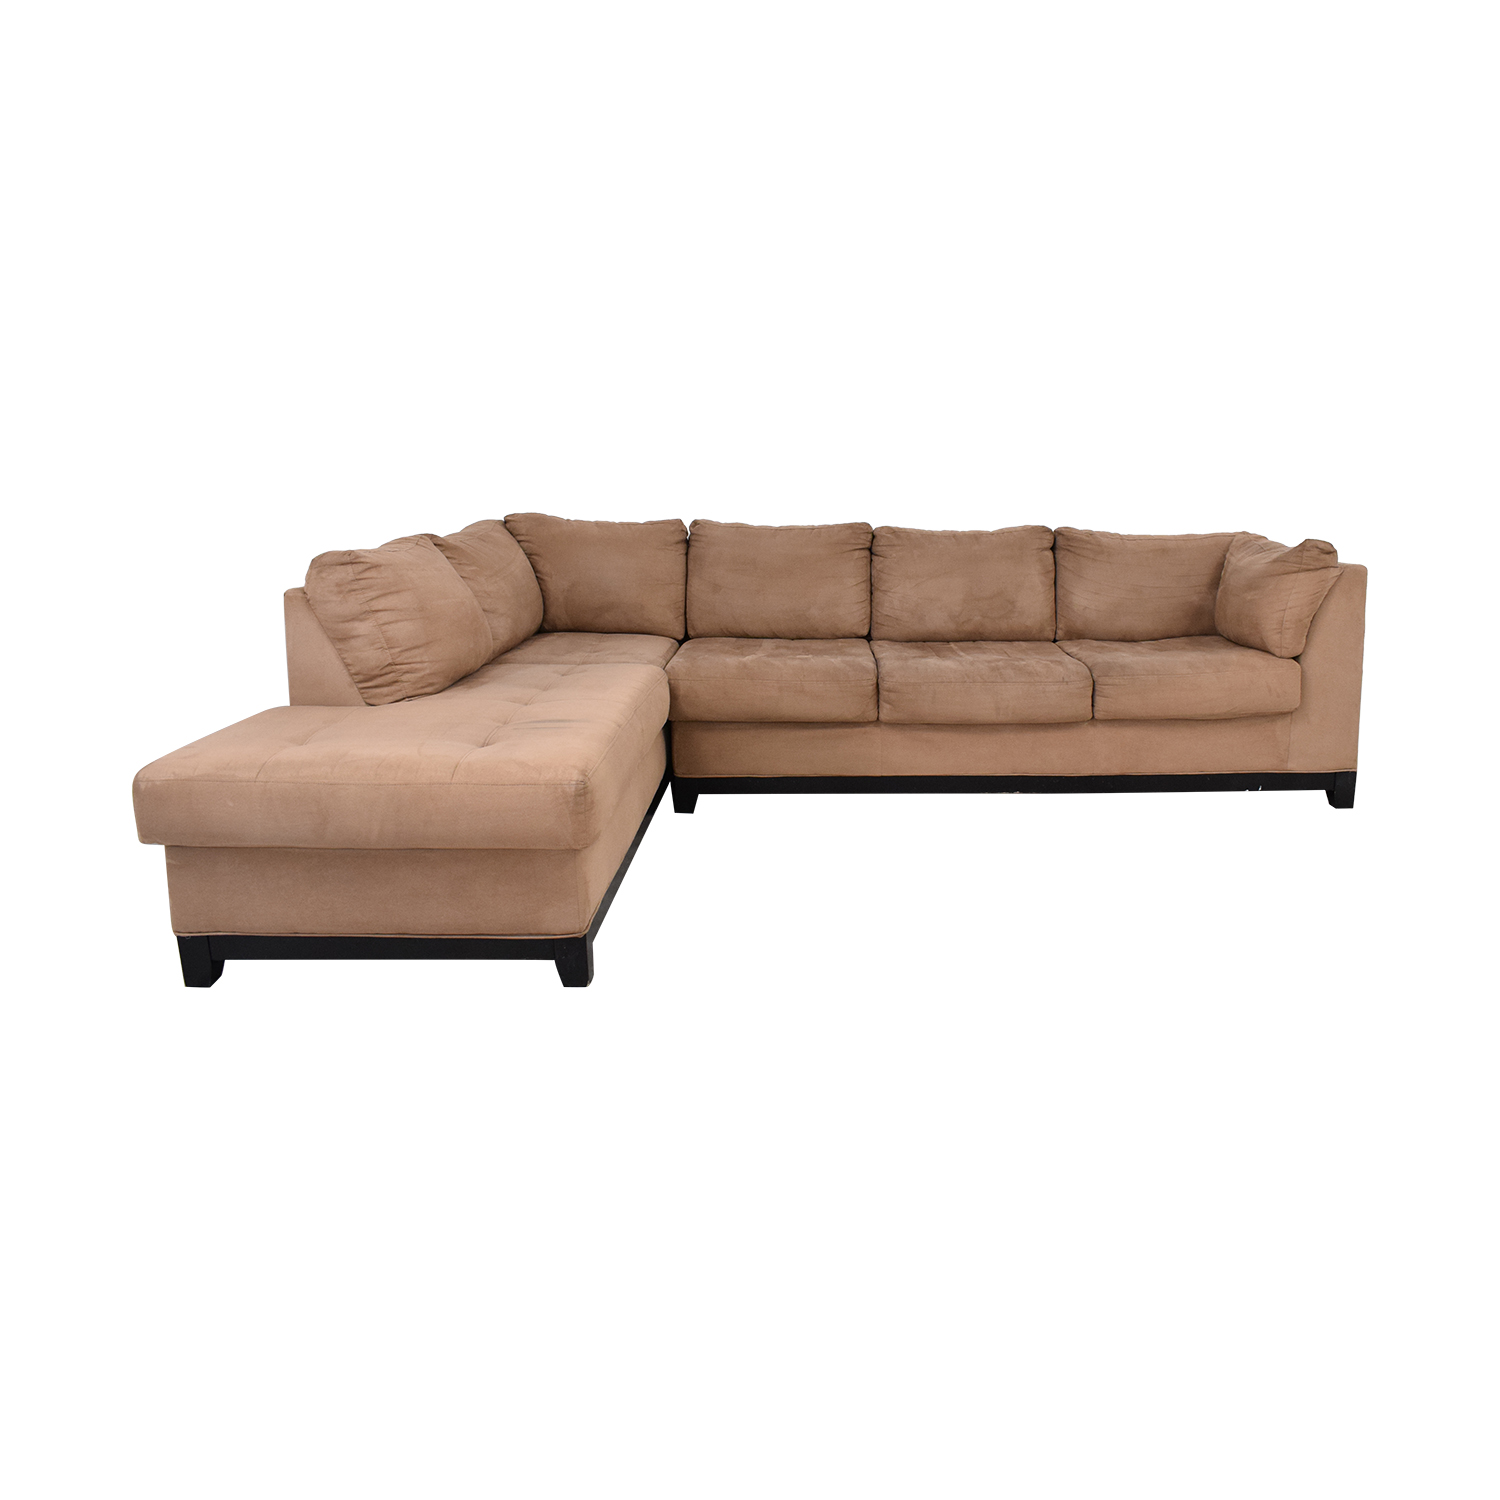 Raymour & Flanigan Two Piece Chaise Sectional Sofa / Sectionals